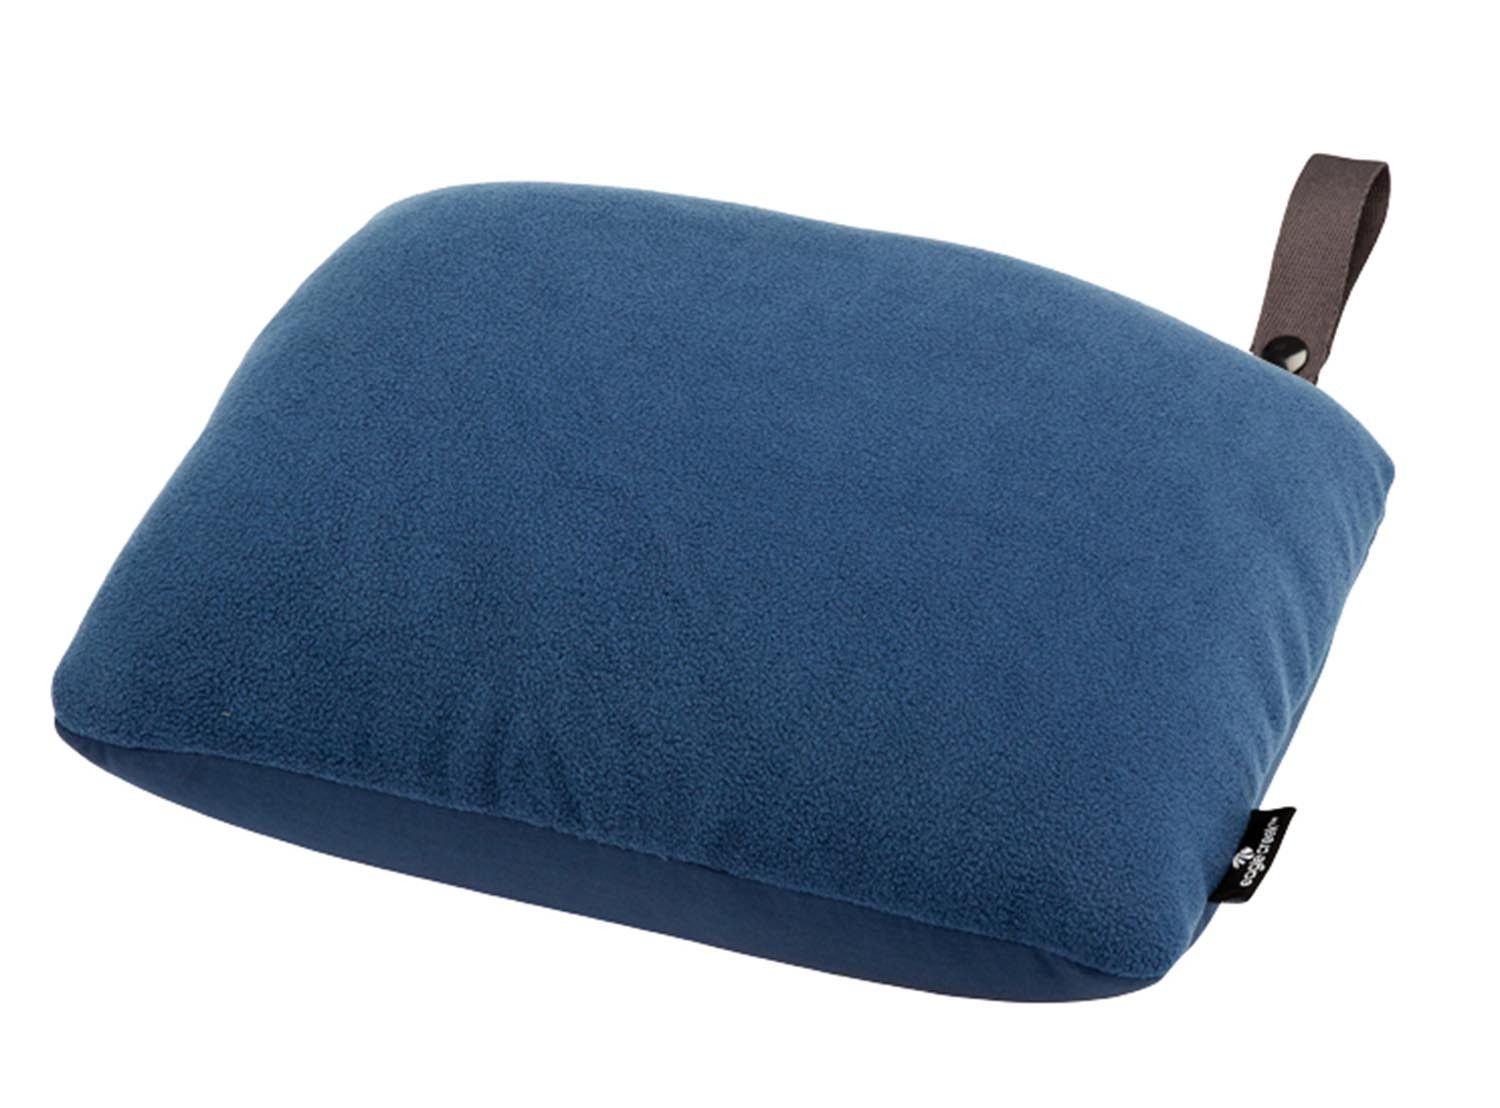 Eagle Creek 2-in-1 Travel Pillow